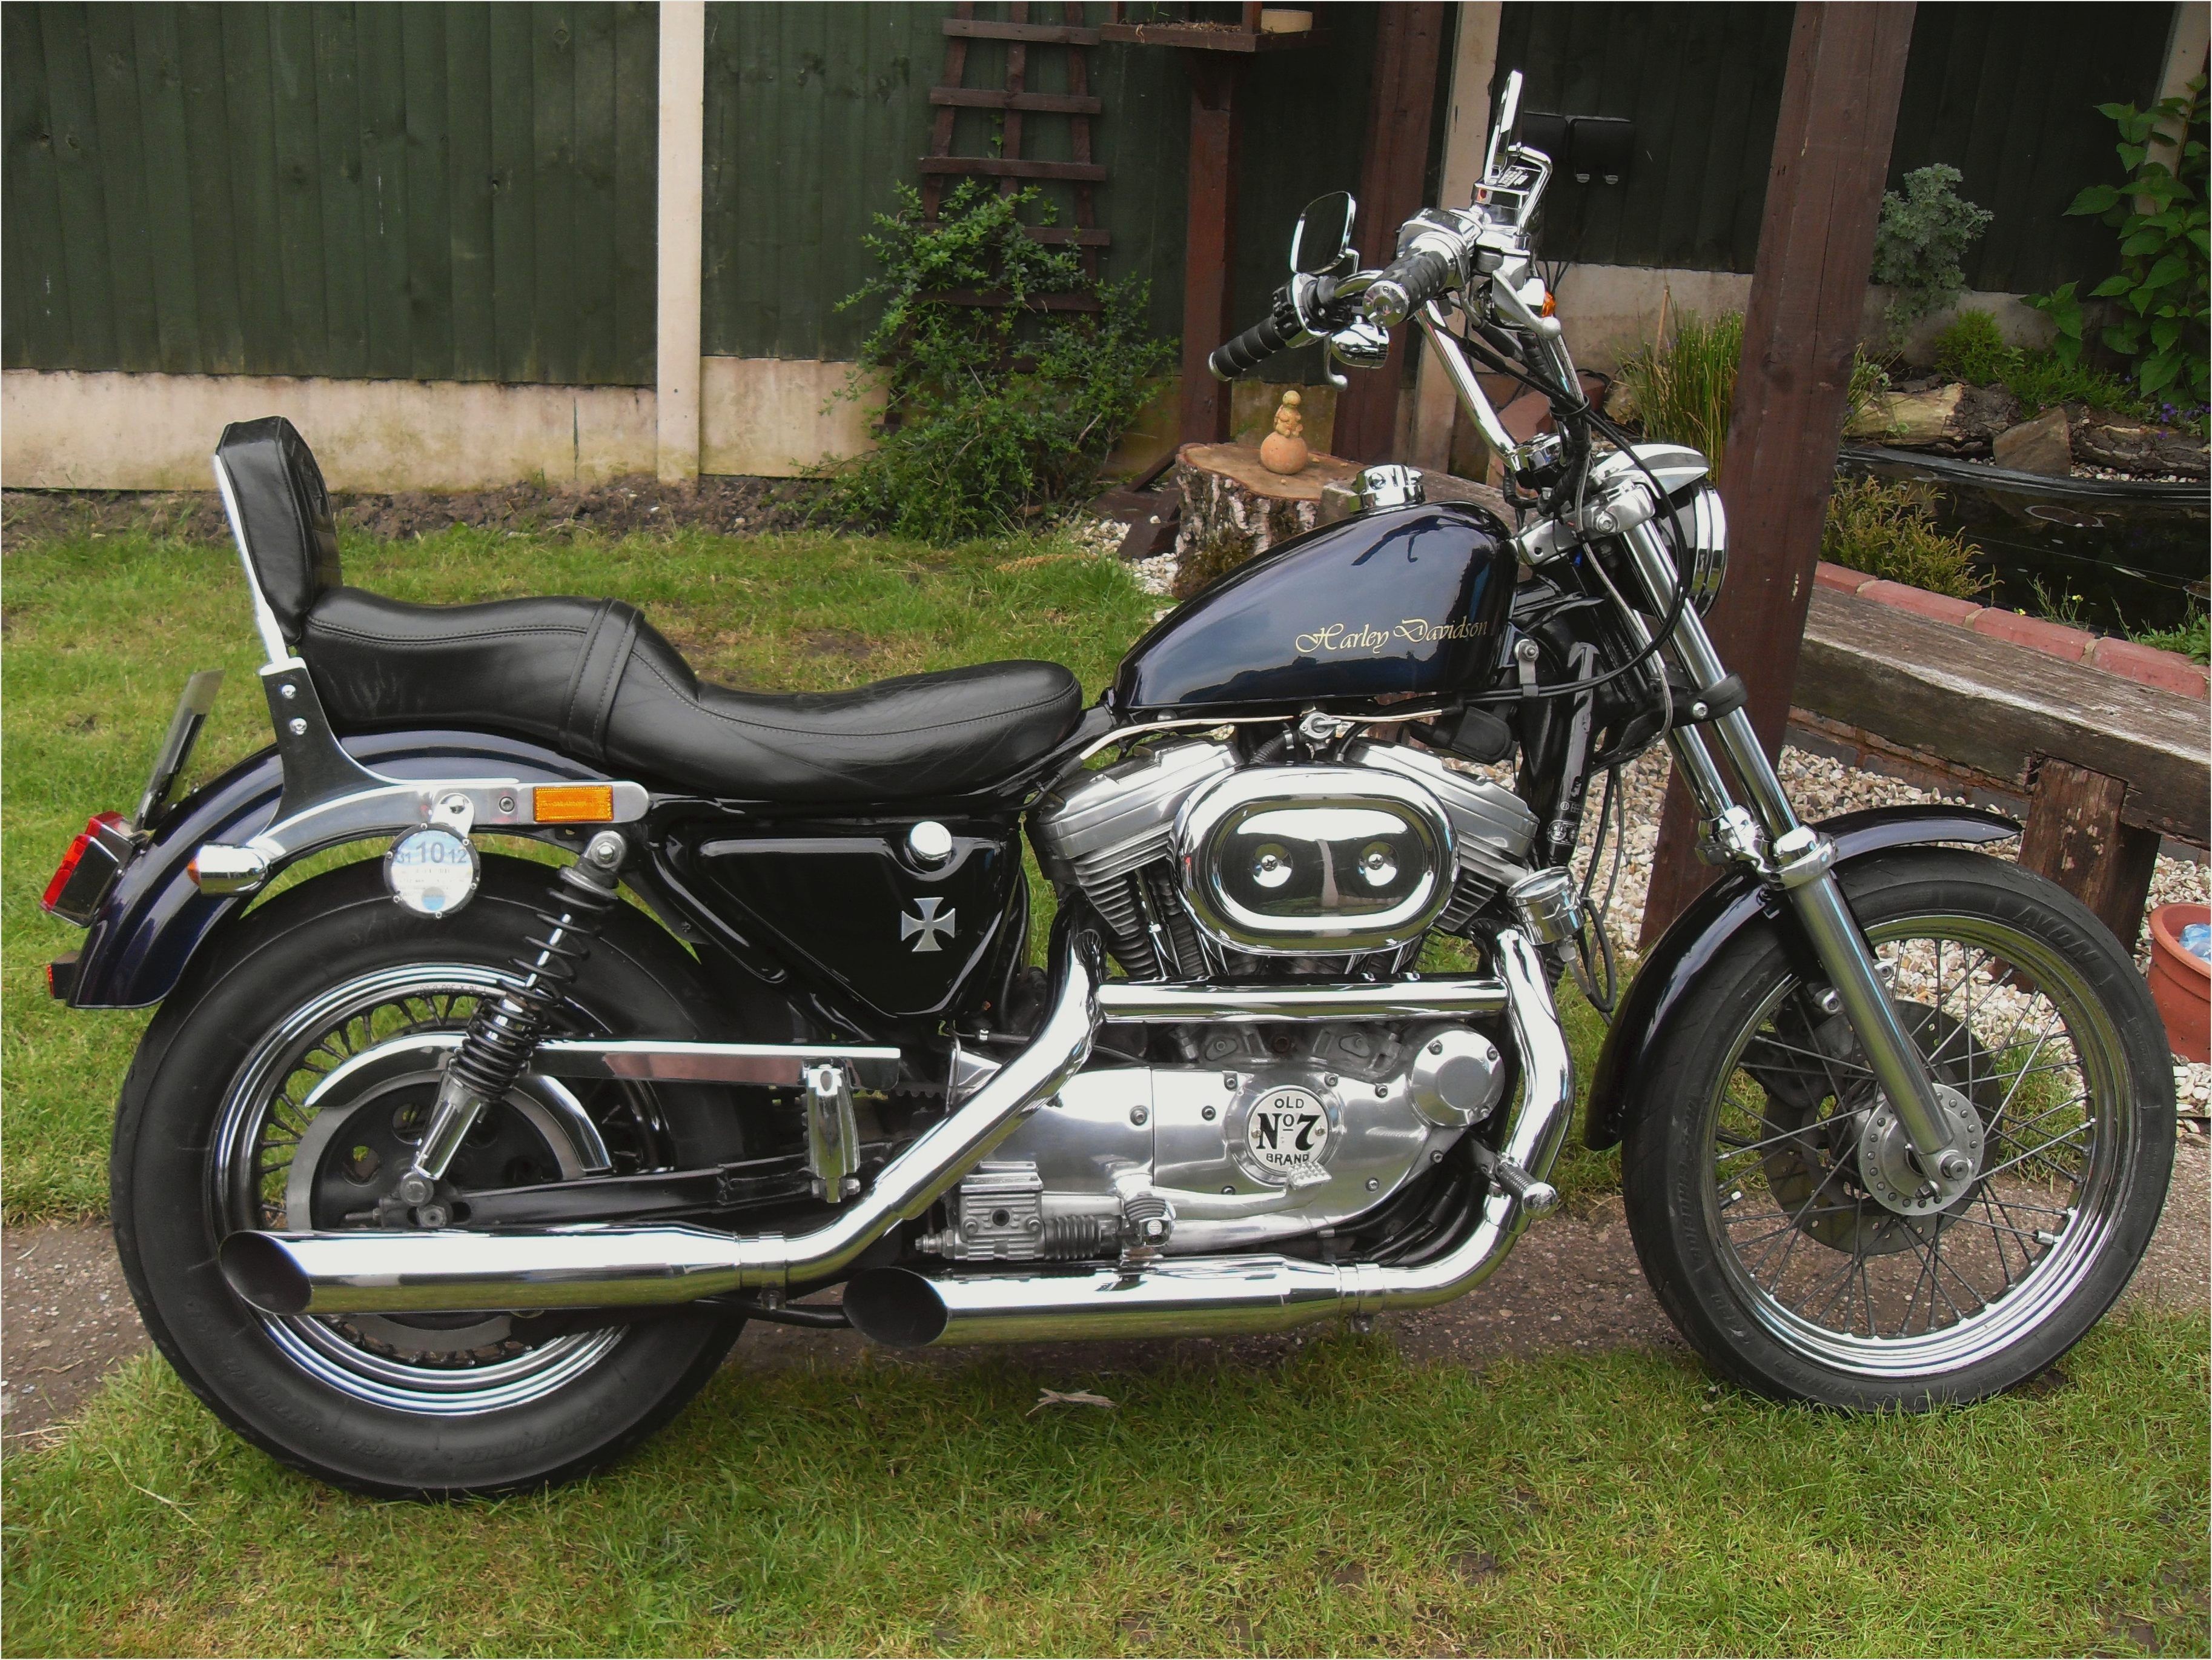 2006 Harley-Davidson XLH 883 Sportster: pics, specs and information ...